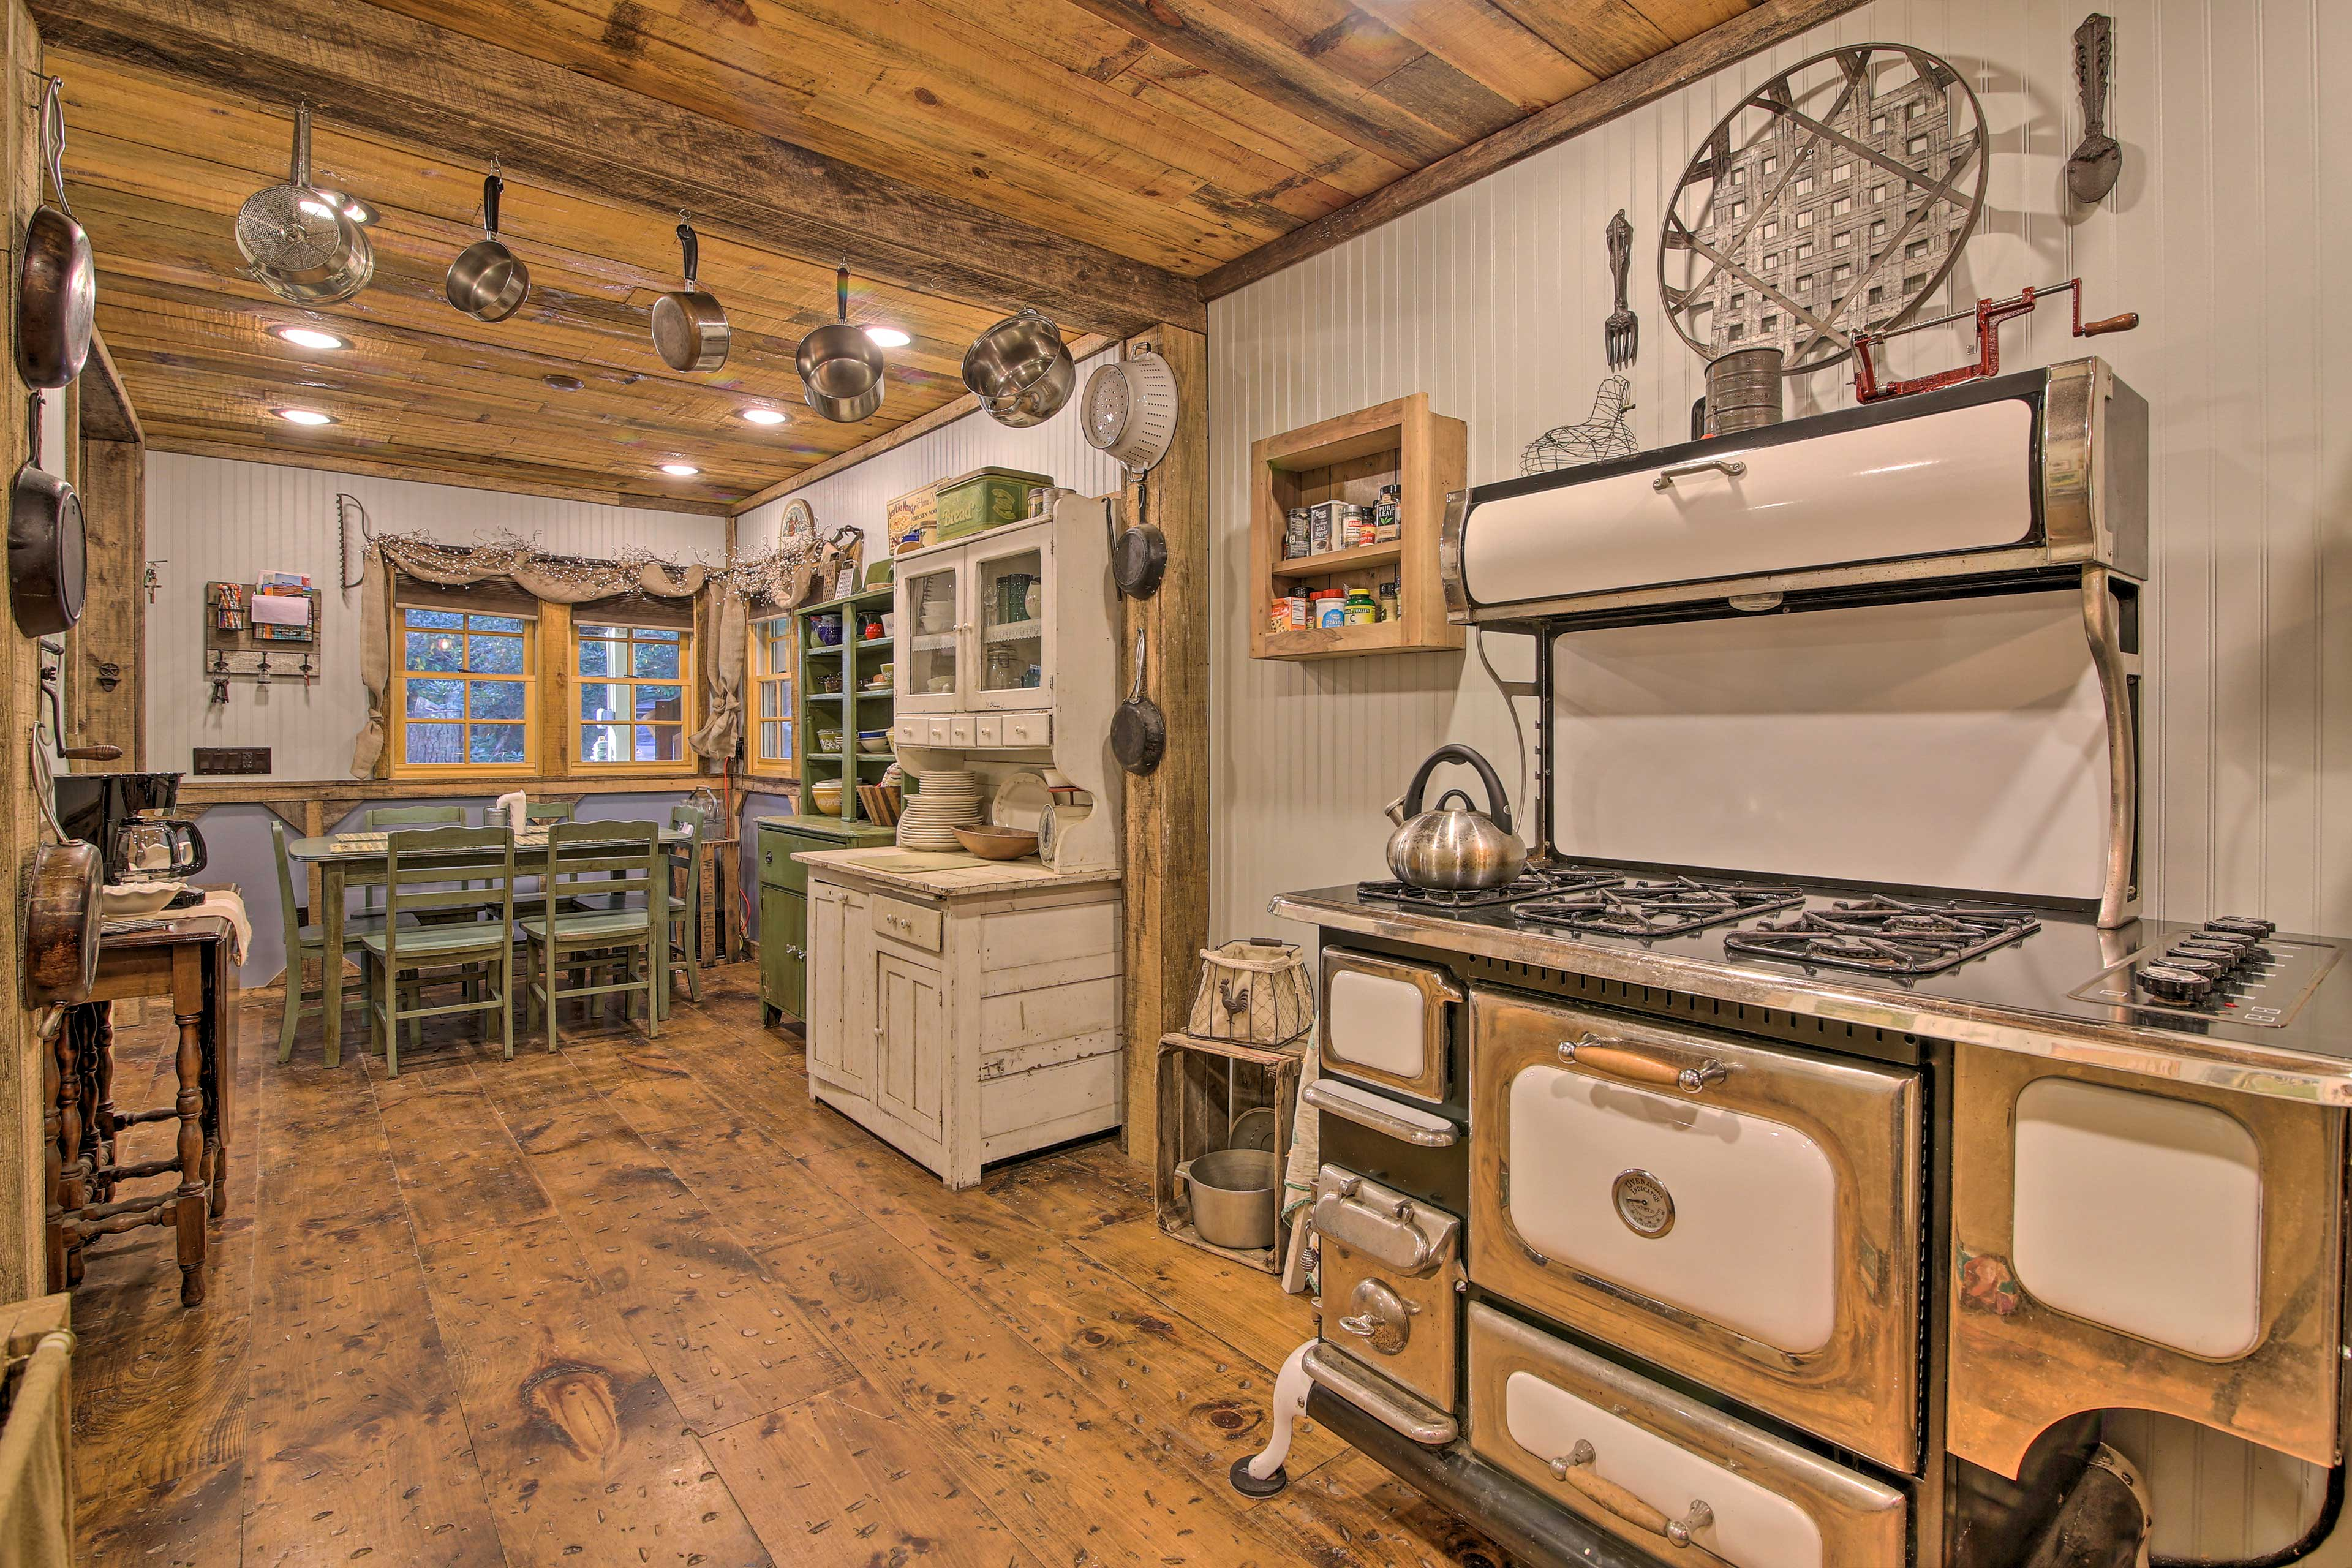 The kitchen features a statement-making retro gas stove.